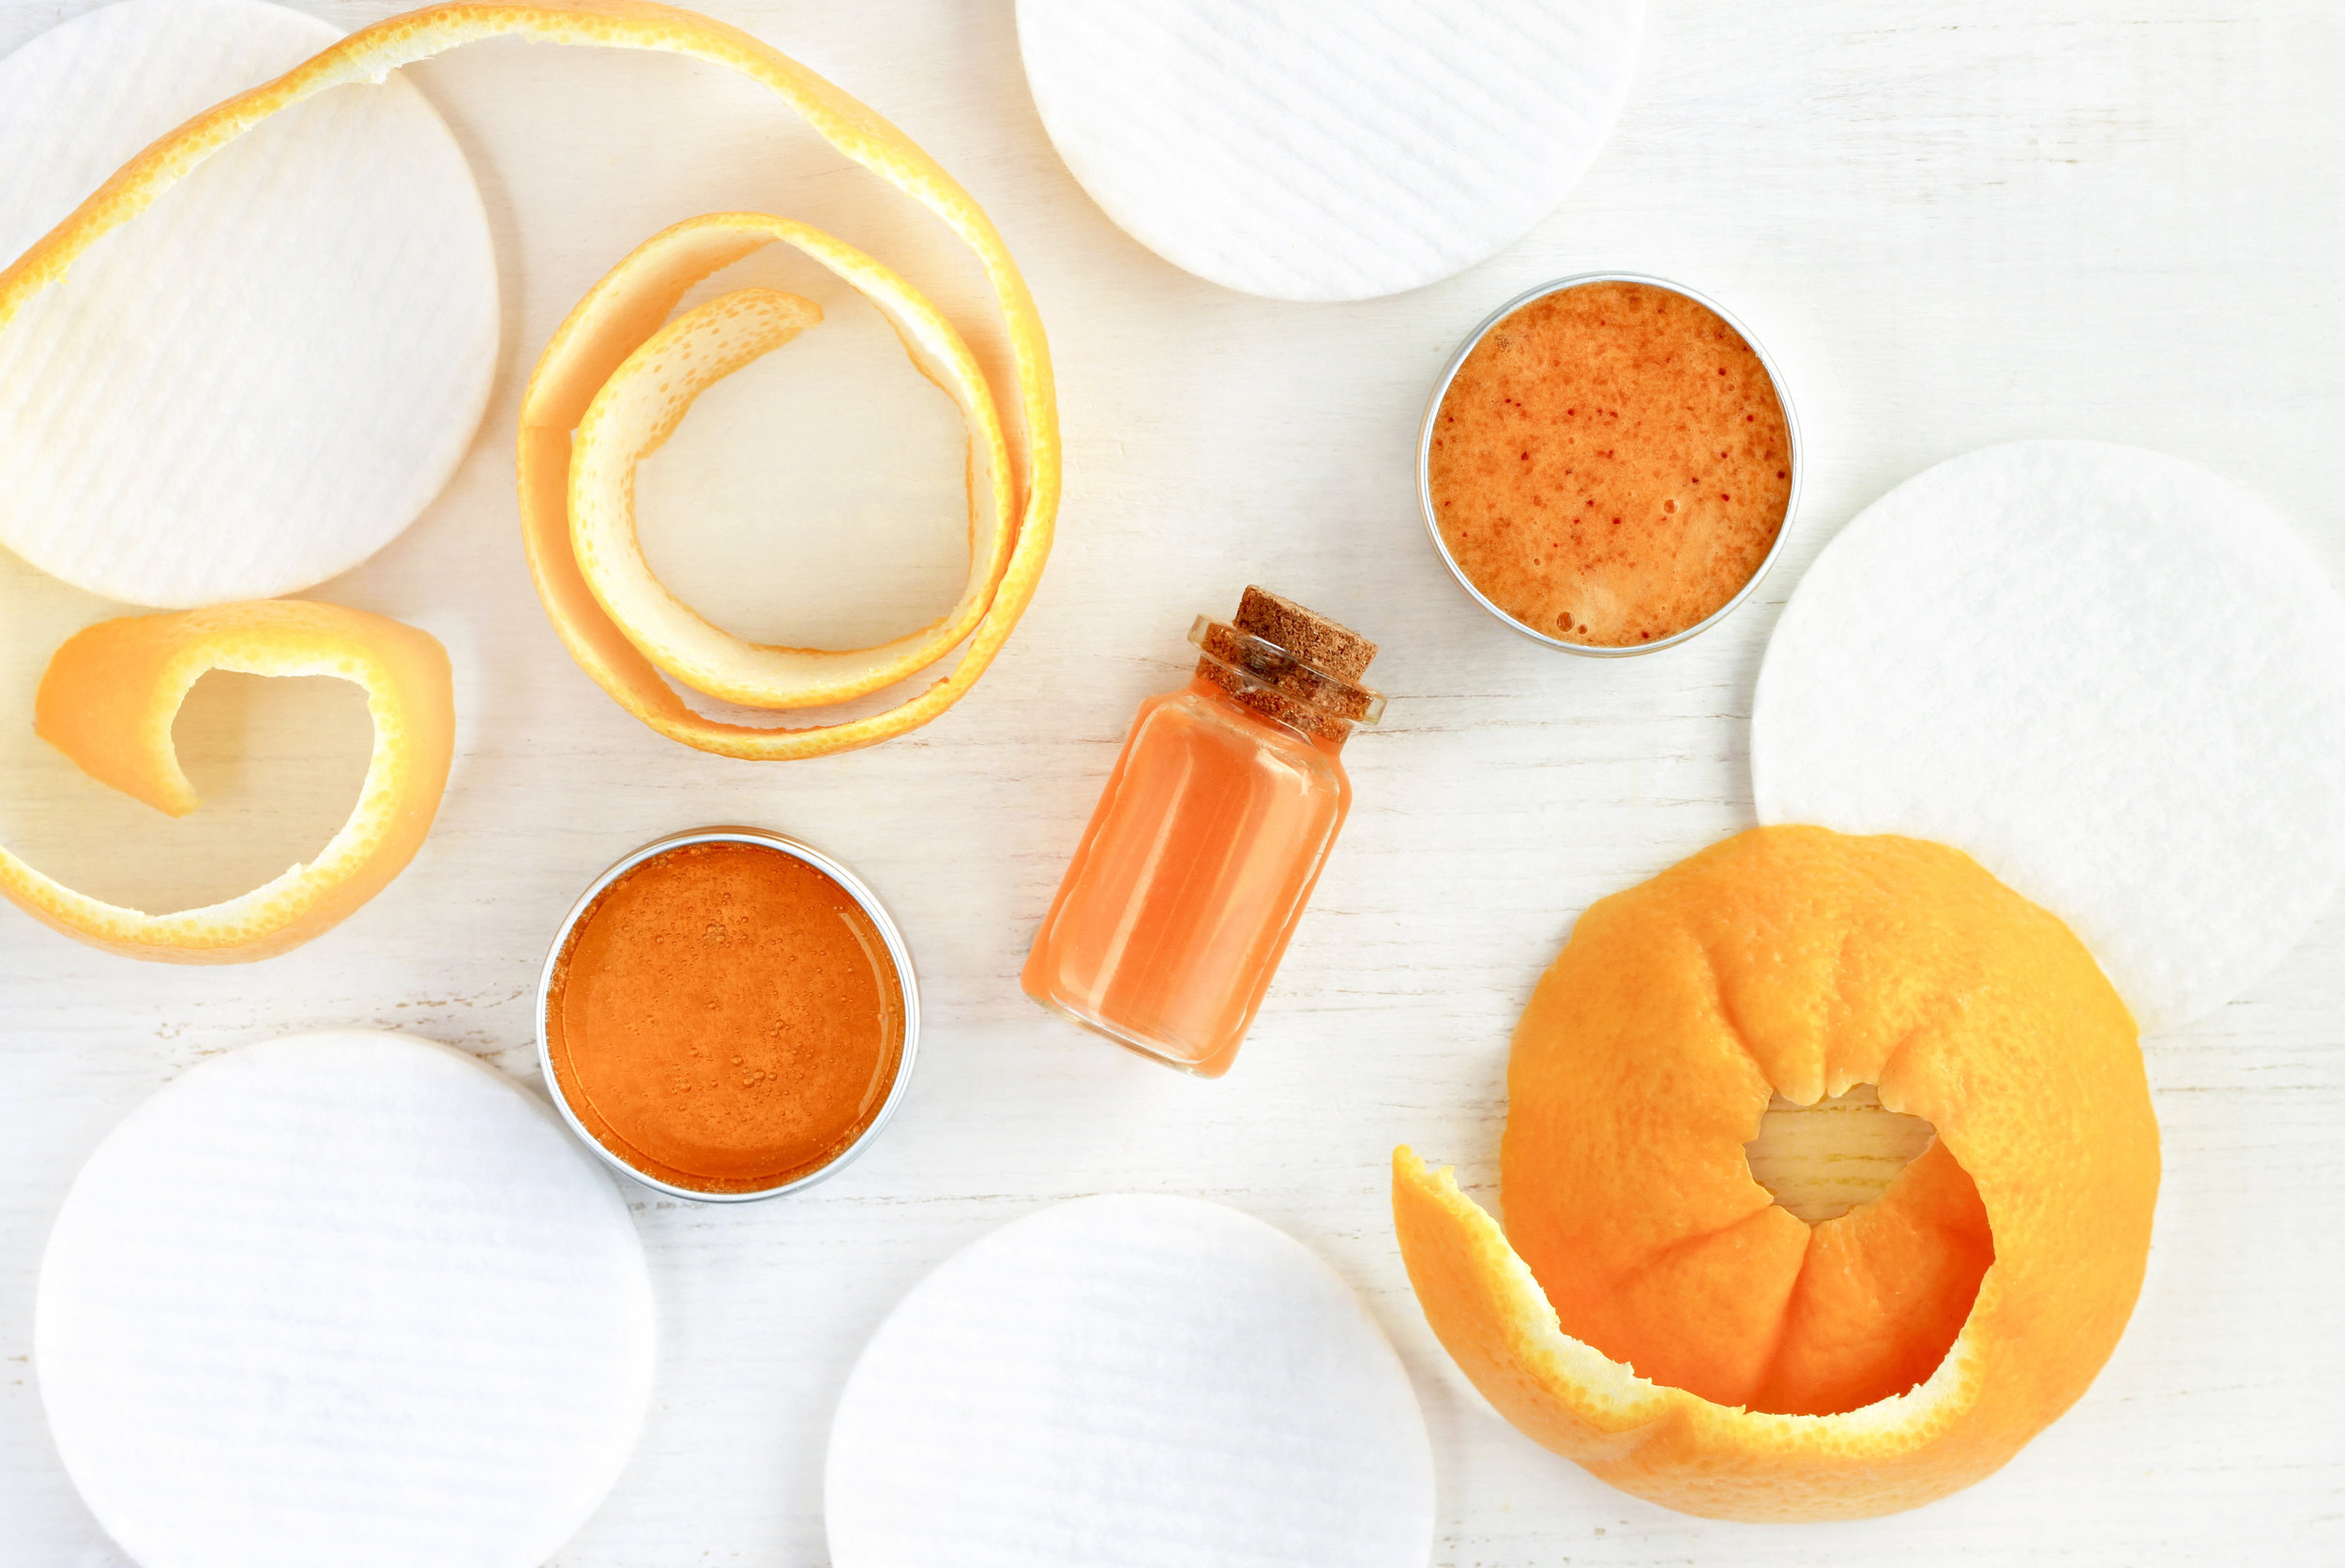 Vitamin C - Vitamin C boosts your skin's collagen production to give you firmer, more plump skin and smooth out fine lines and wrinkles. The antioxidant properties of vitamin C help fight free radicals and damage caused by UV radiation. The result is anti-aging action for younger-looking skin.